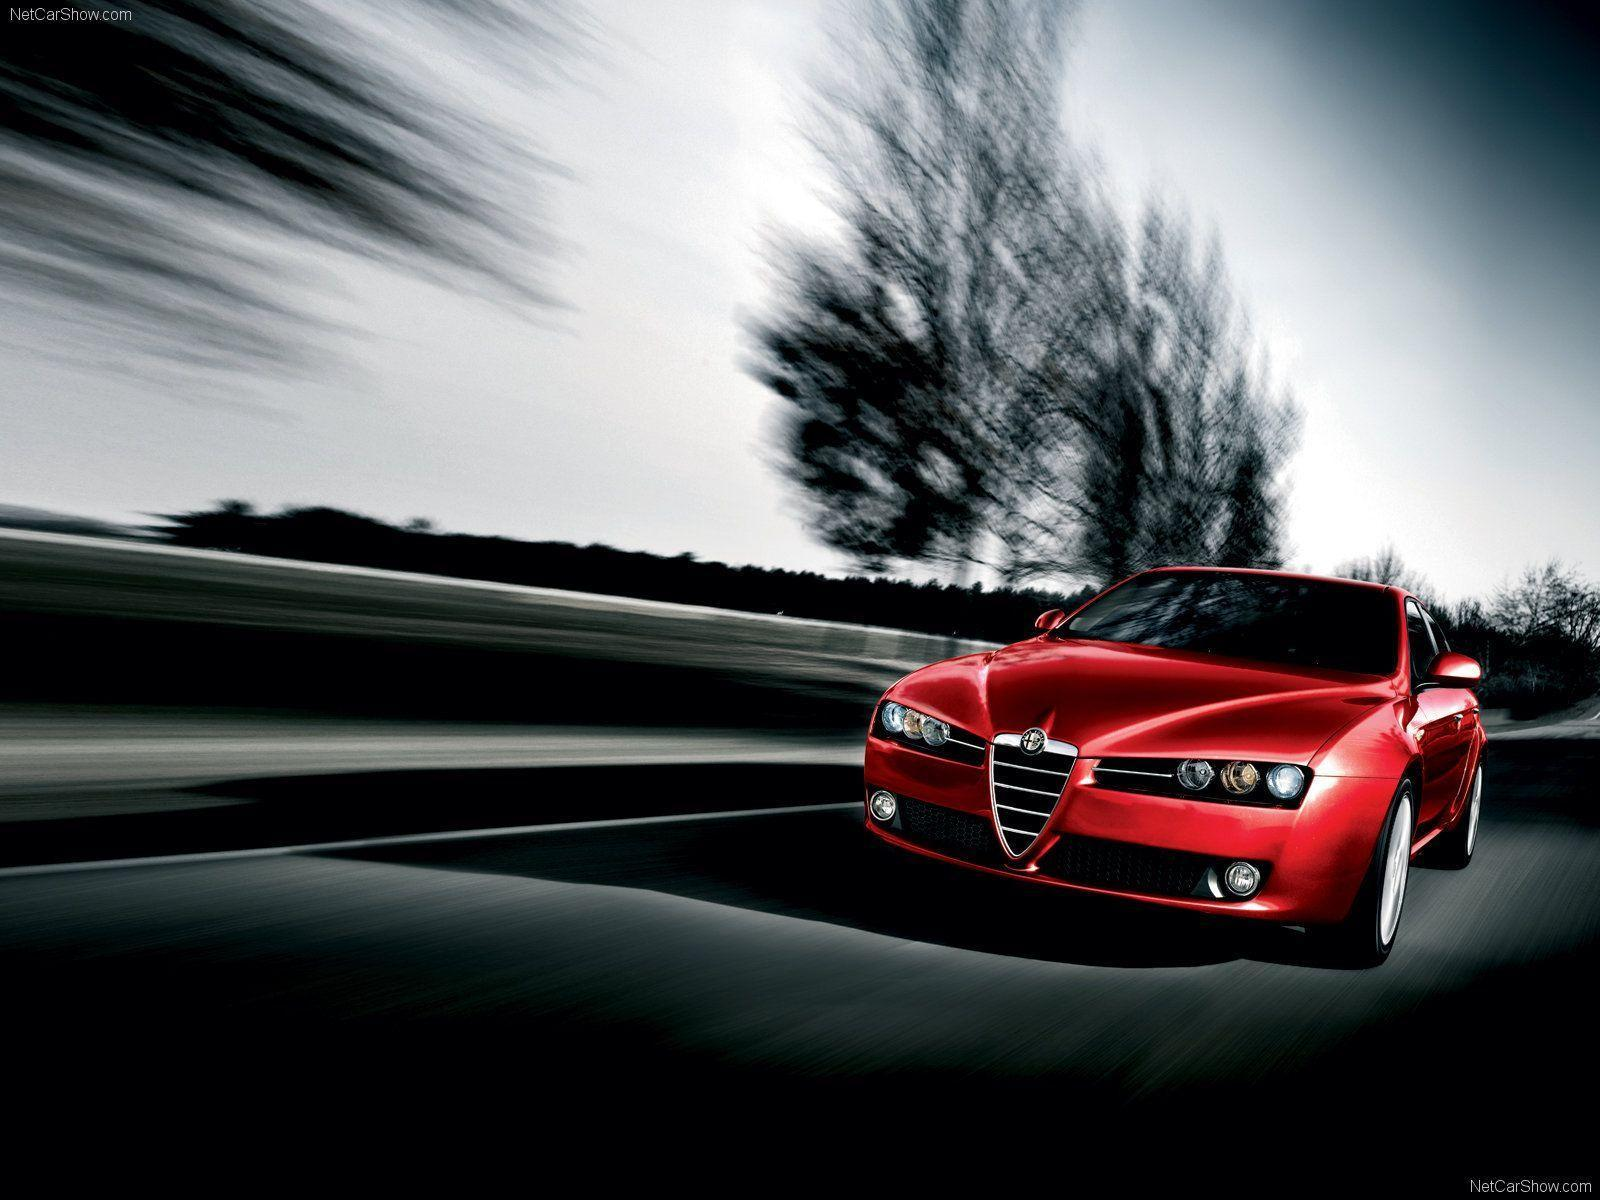 Image For > Alfa Romeo 159 Wallpapers